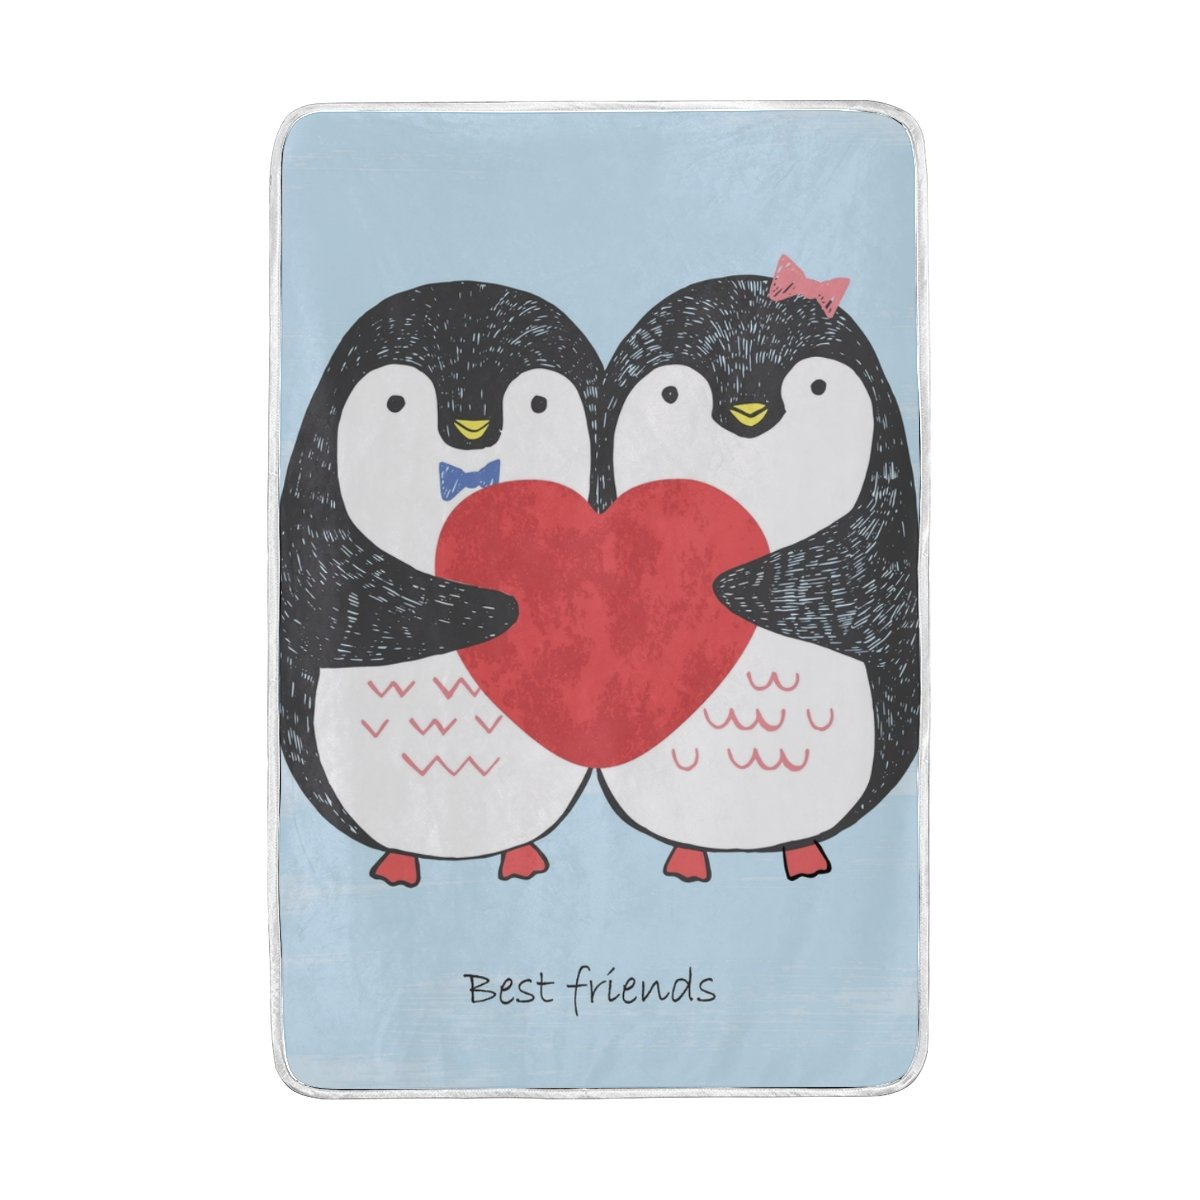 Vantaso Soft Blankets Throw Valentine Sketch Loving Penguins with Scratched Heart Microfiber Polyester Blankets for Bedroom Sofa Couch Living Room for Kids Children Girls Boys 60 x 90 inch